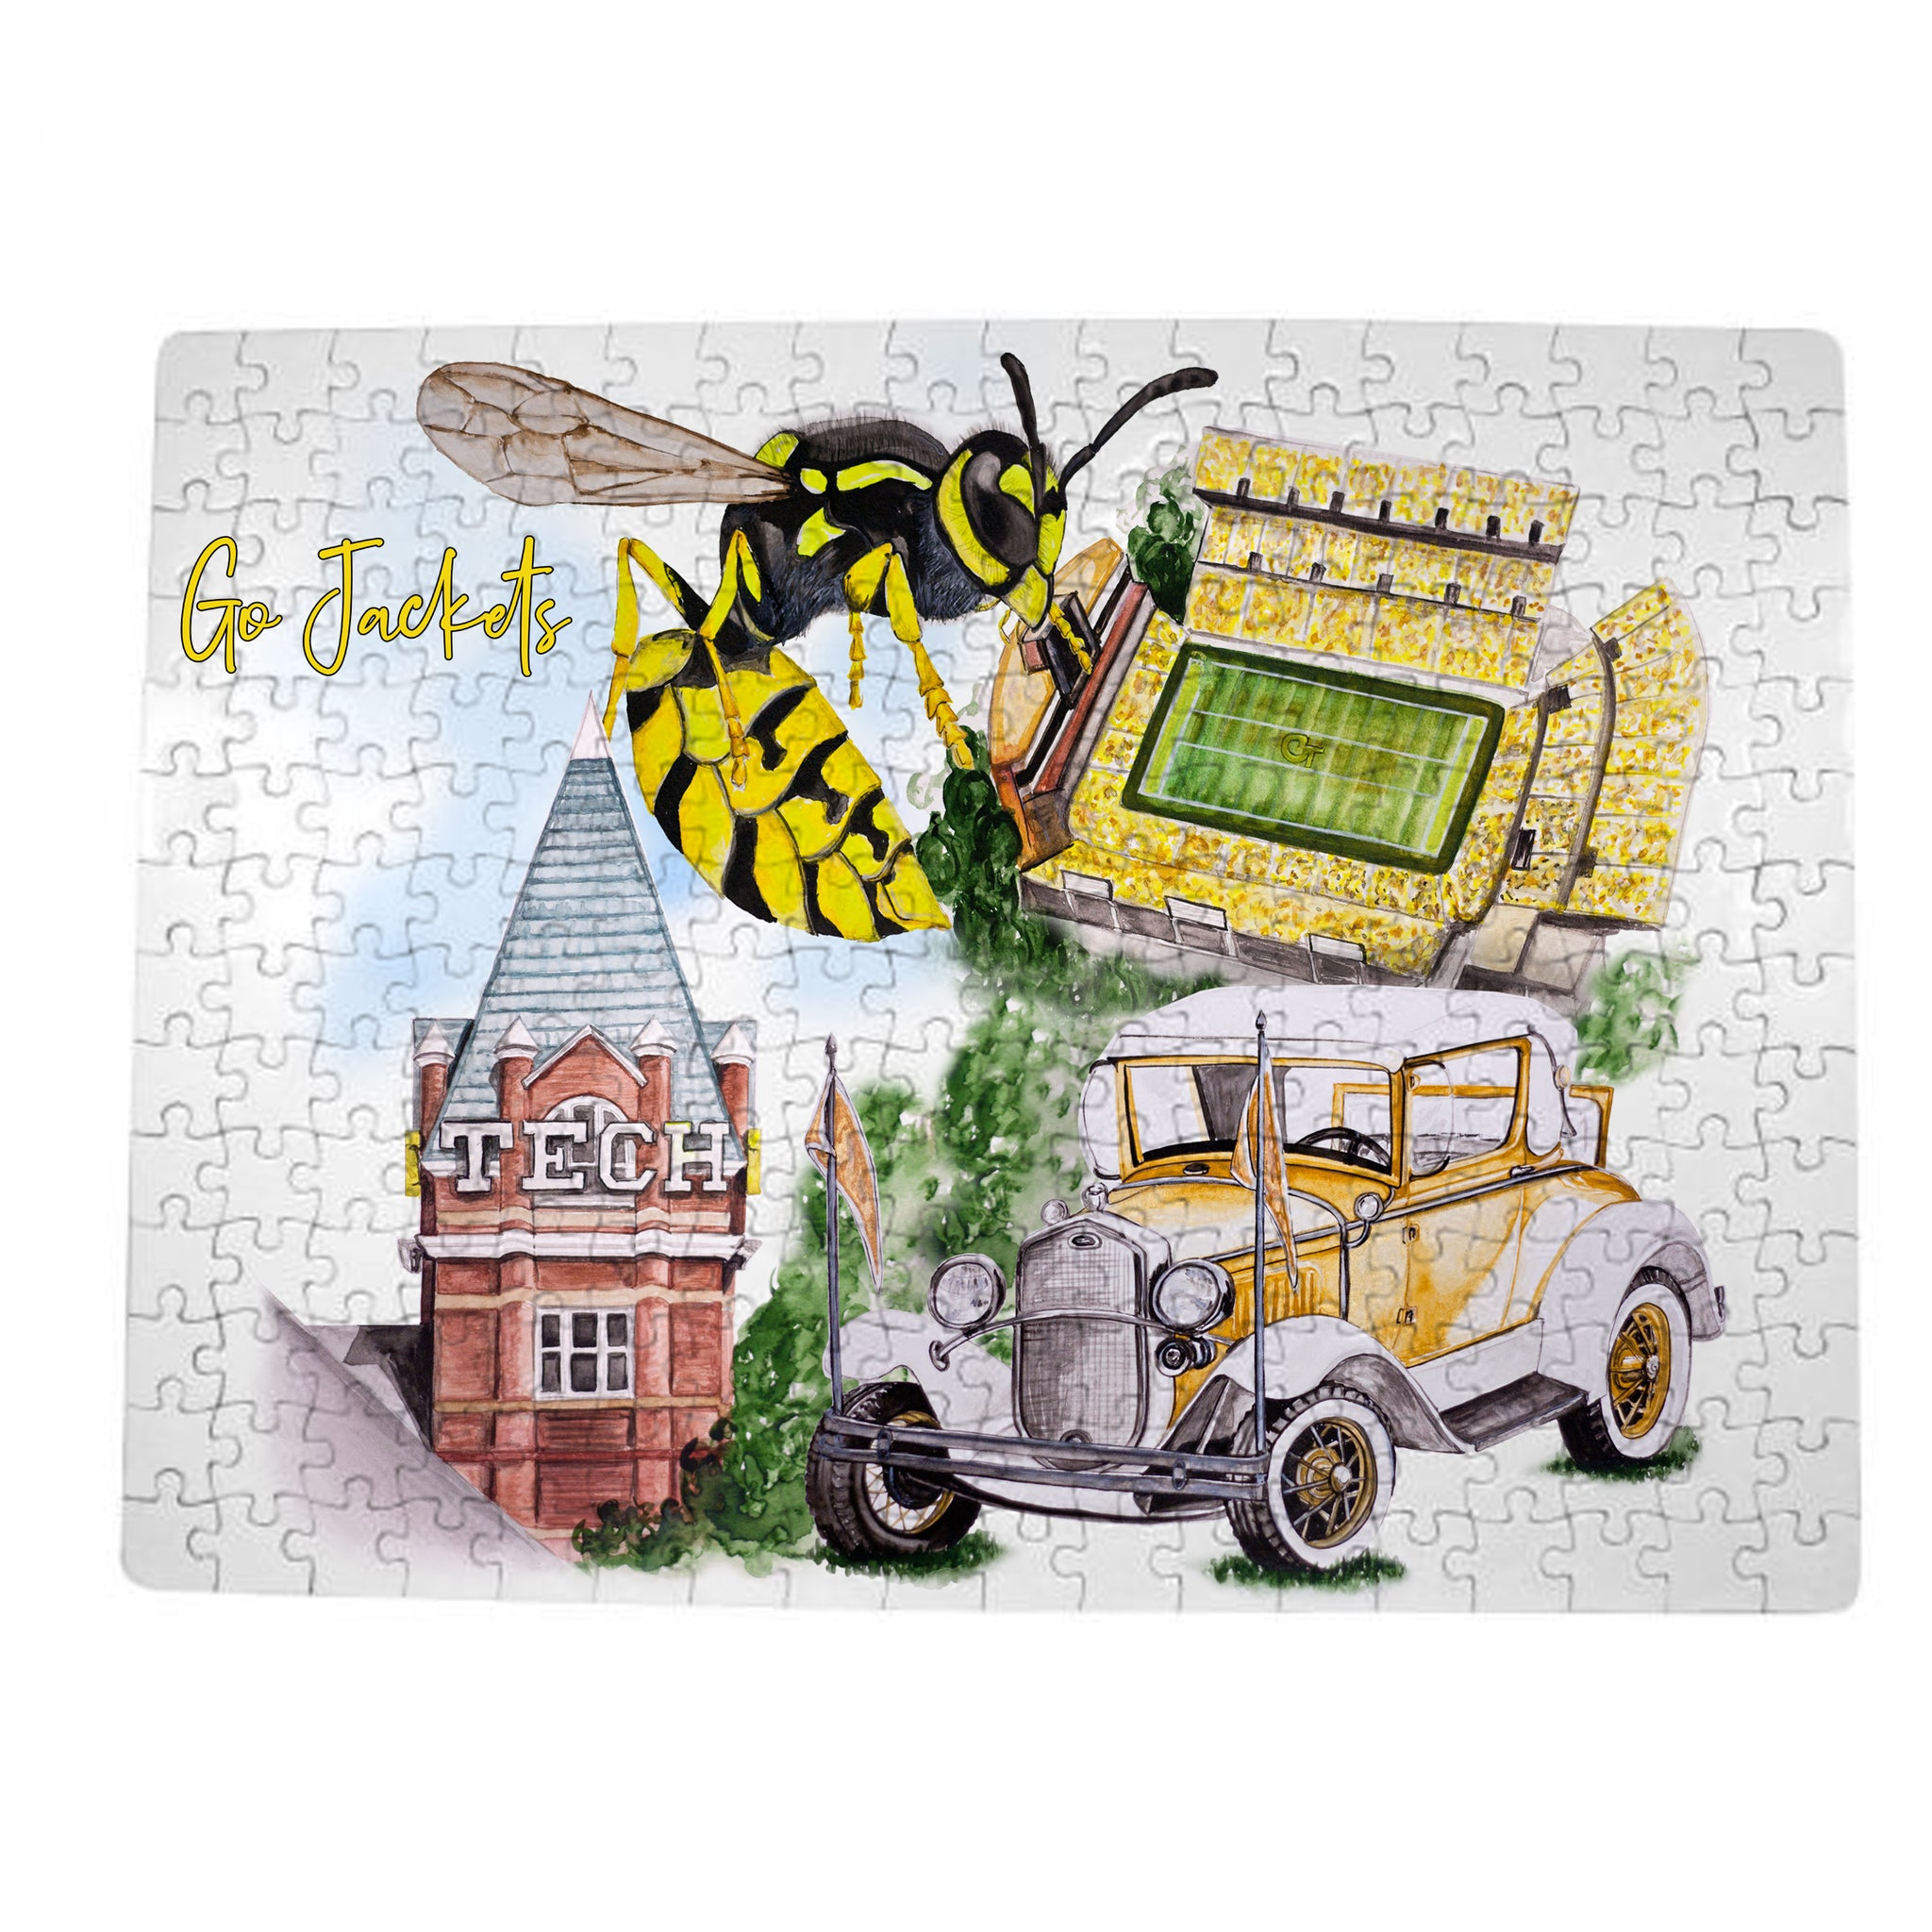 GA Tech Watercolor Puzzle